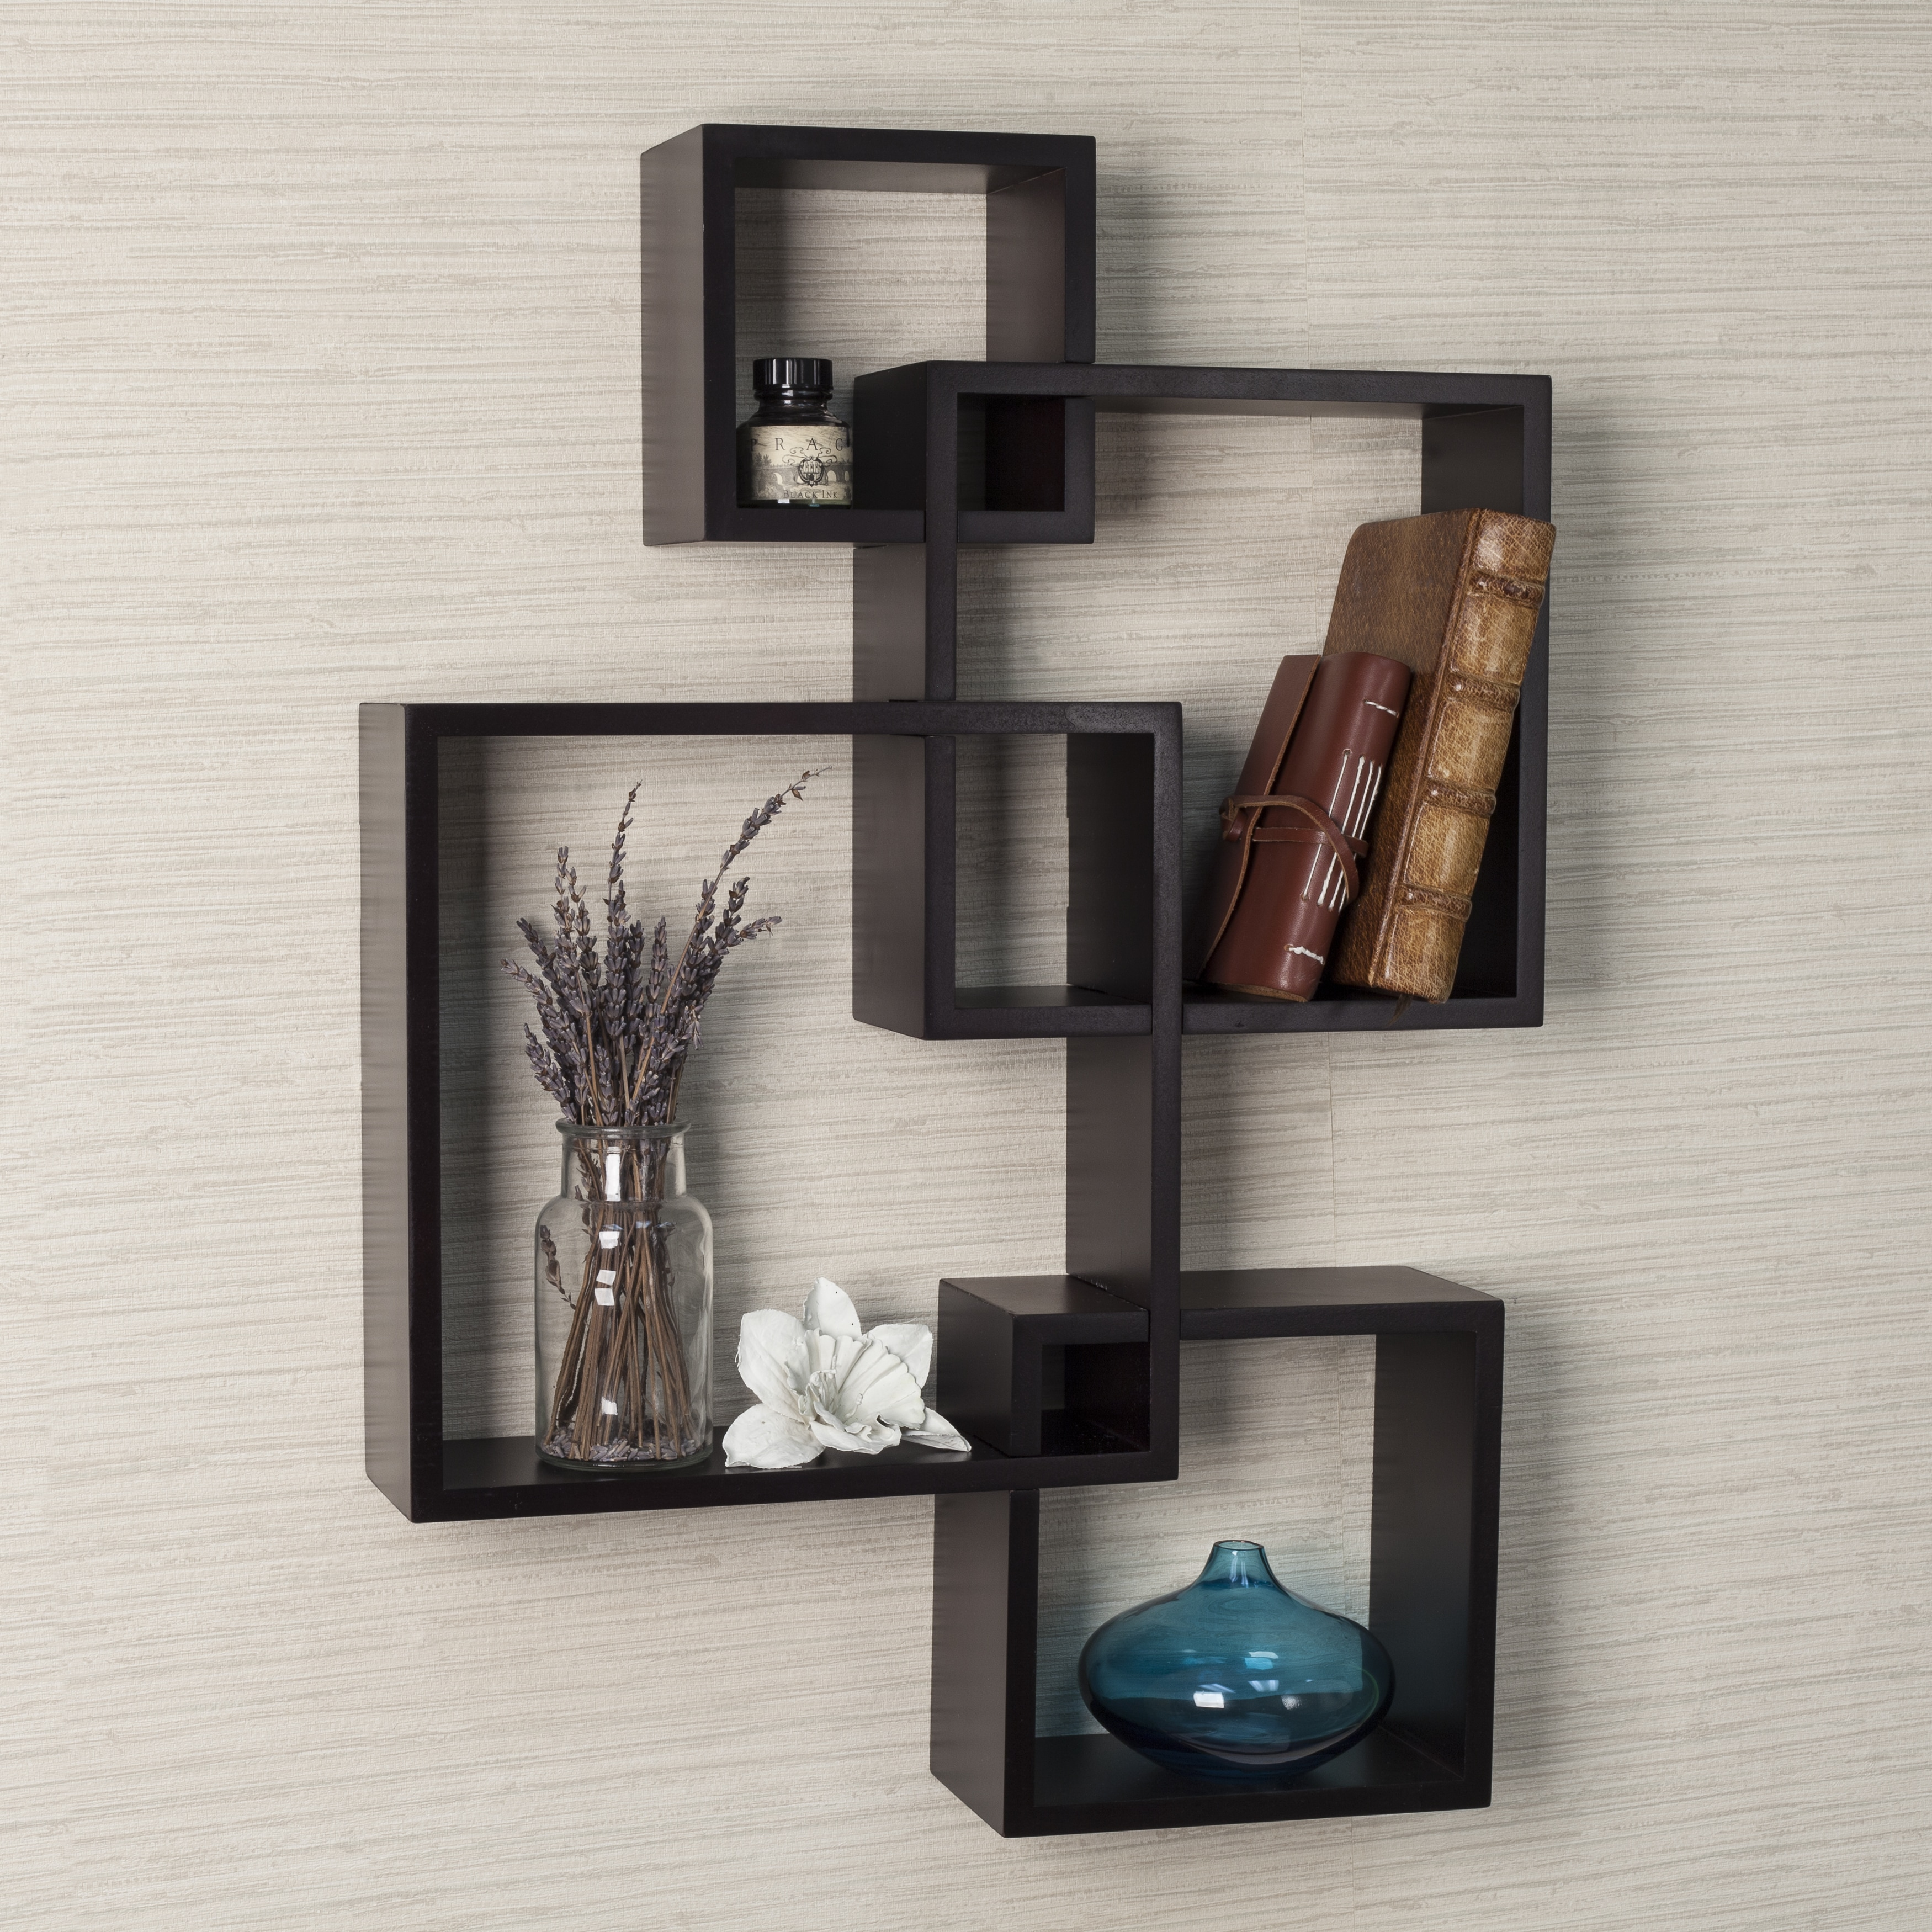 4 Cube Intersecting Wall Mounted Floating Shelves Espresso Finish